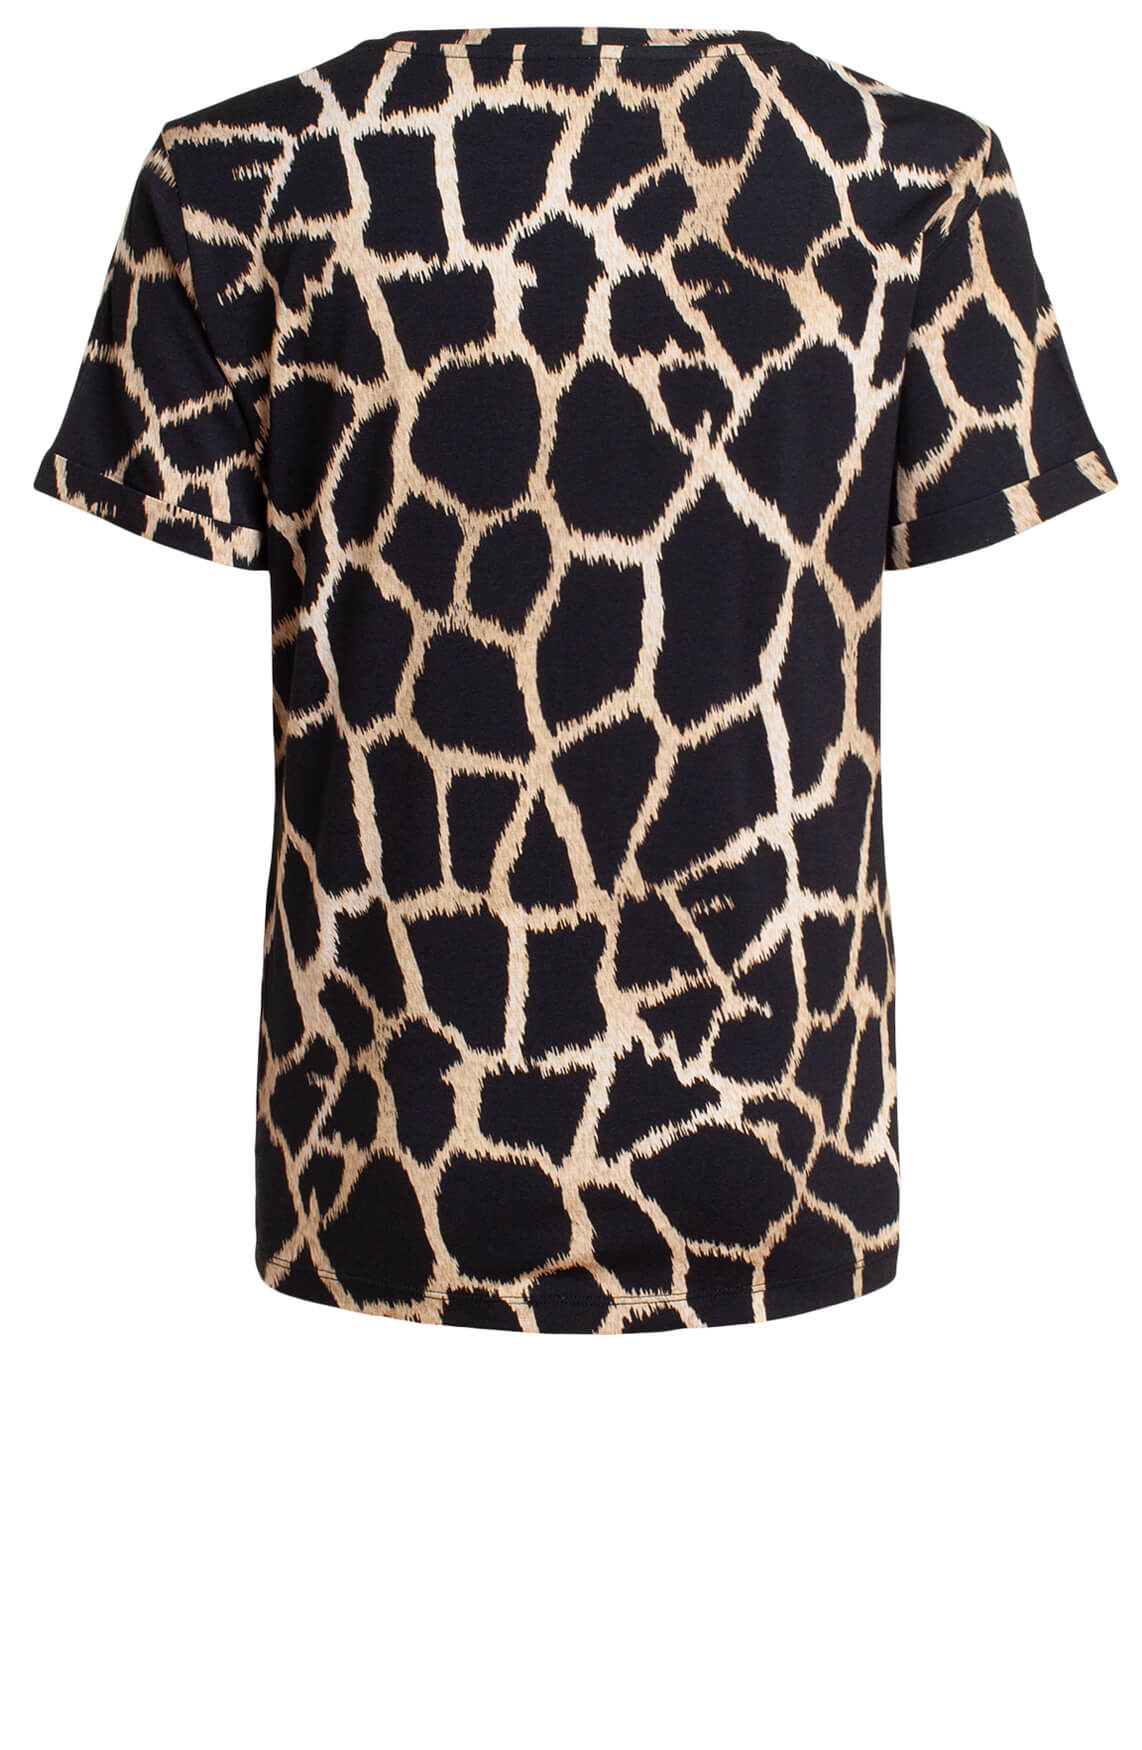 Anna Dames Shirt met animalprint zwart